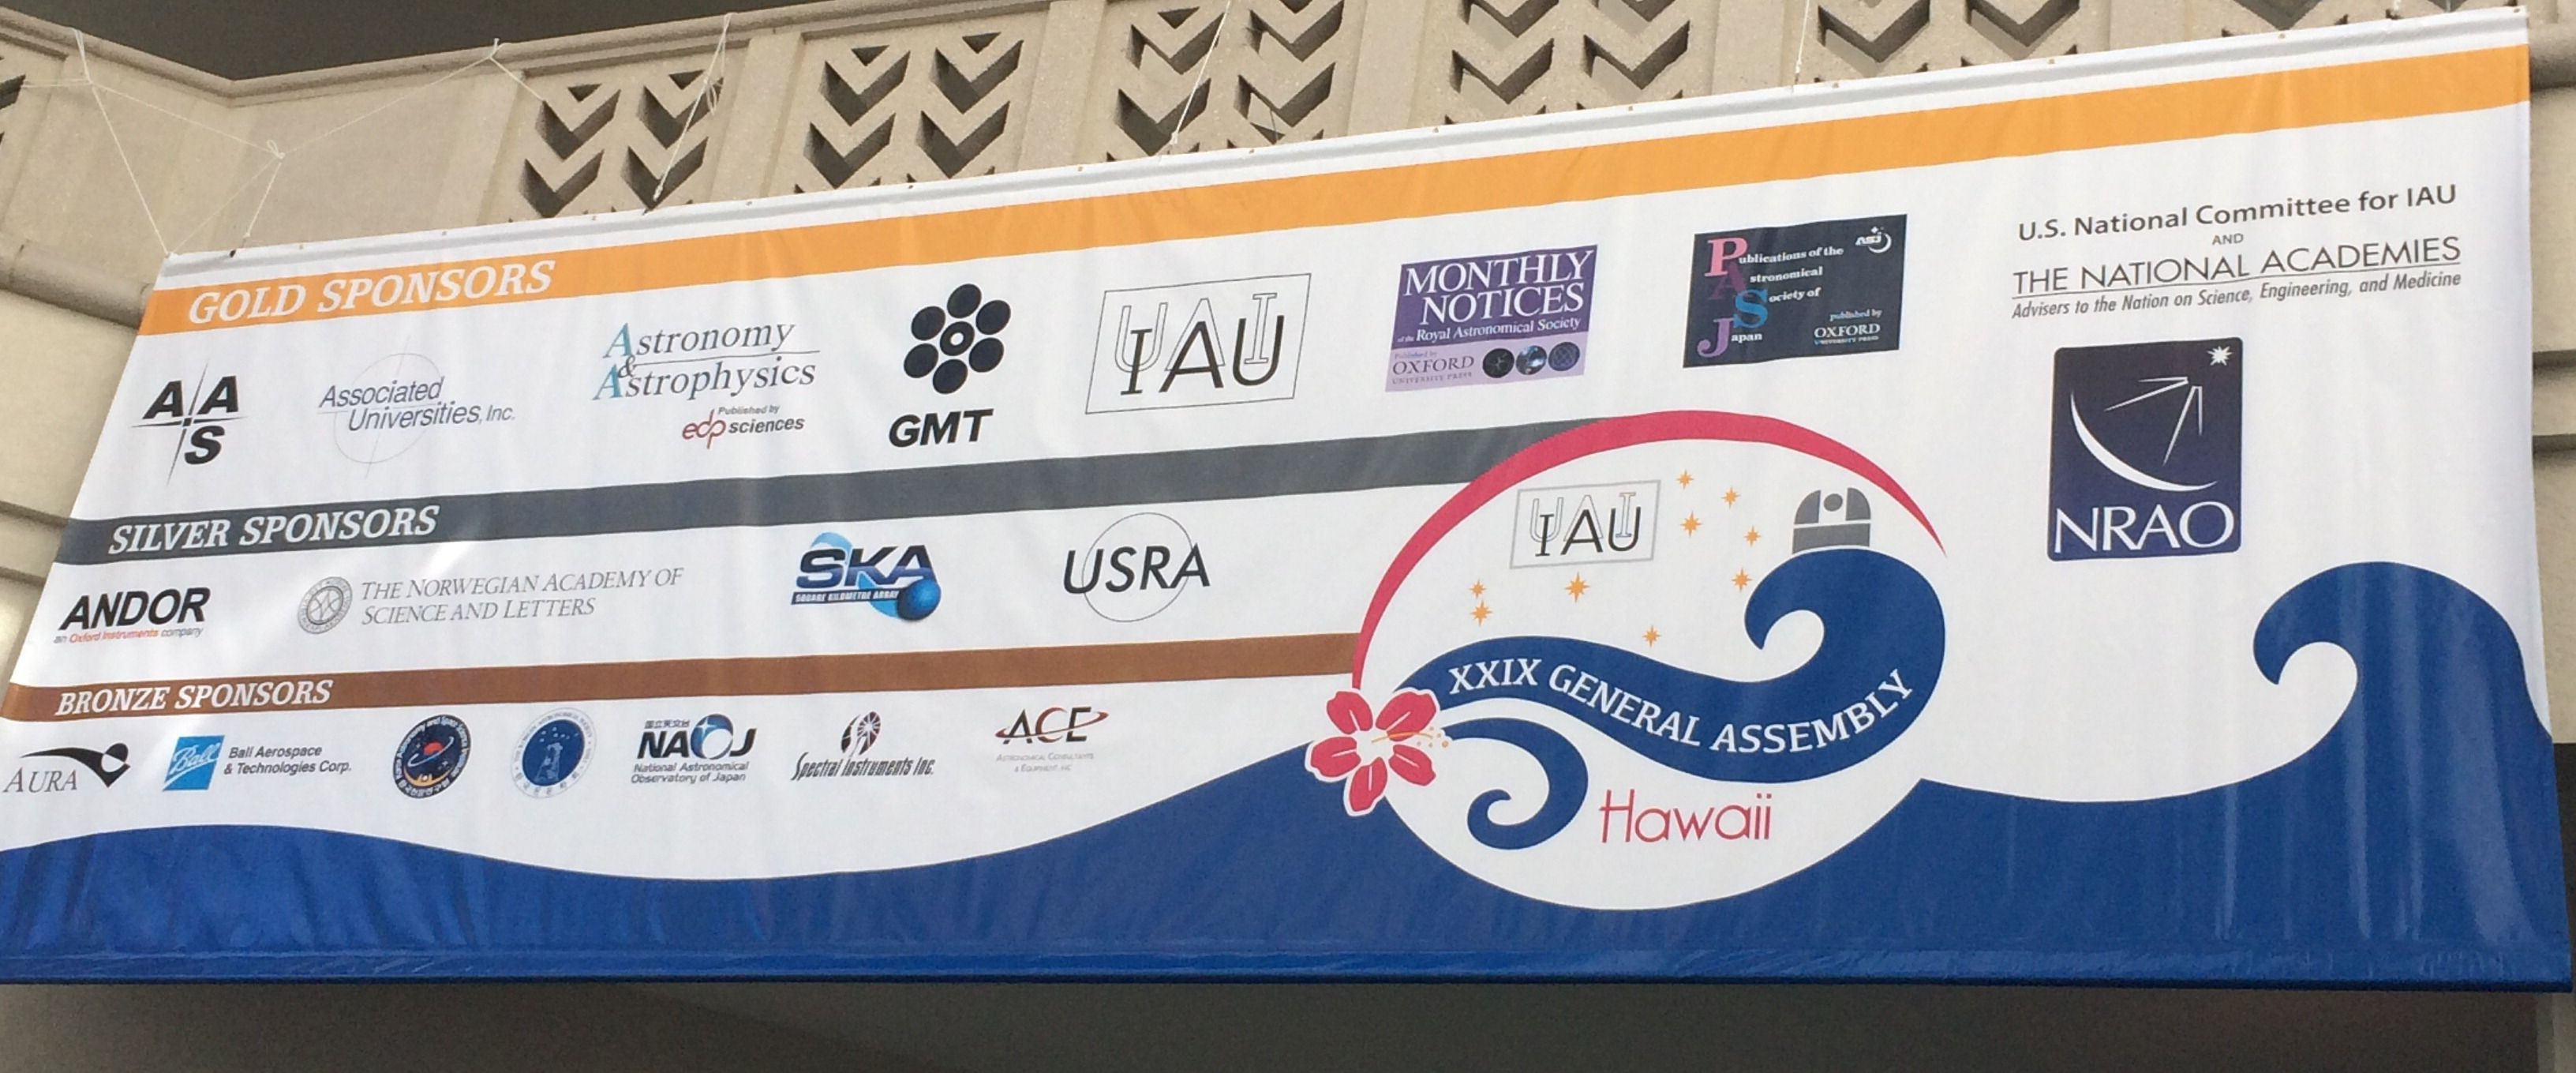 IAU General Assembly Sponsors Banner